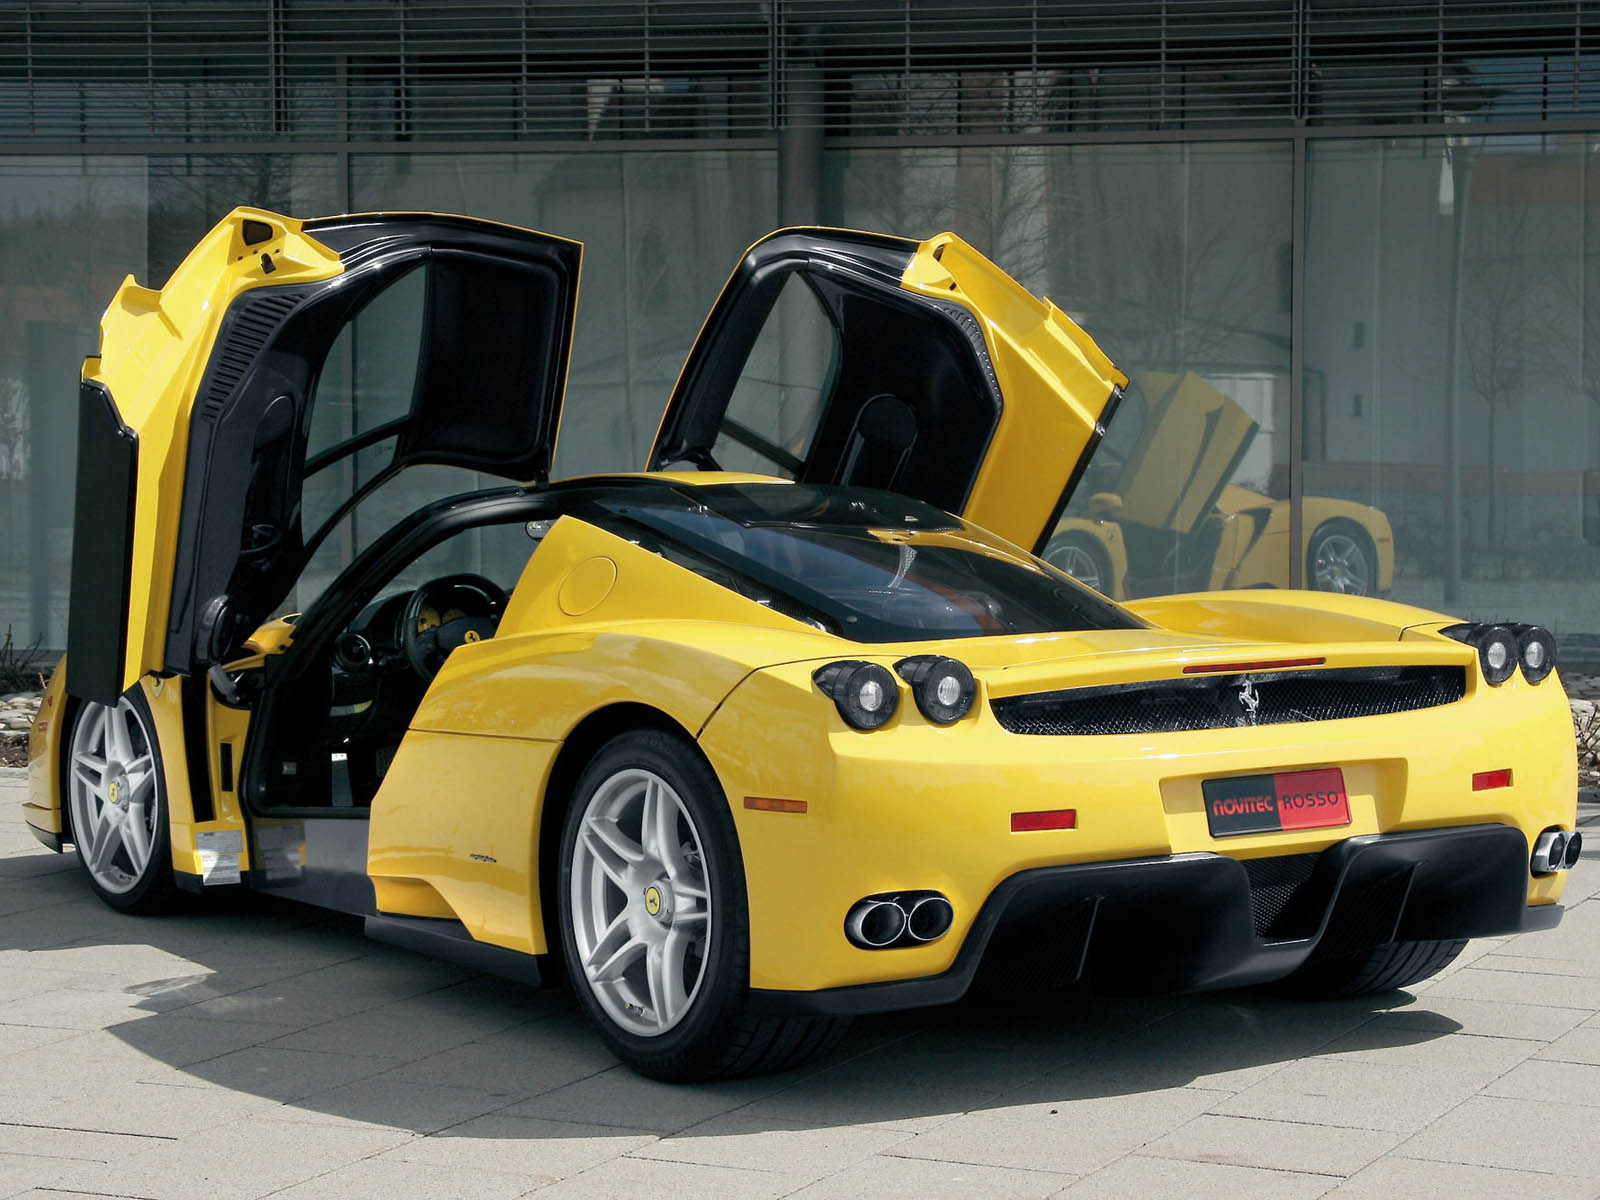 Ferraris Photo Gallery: FERRARI ENZO